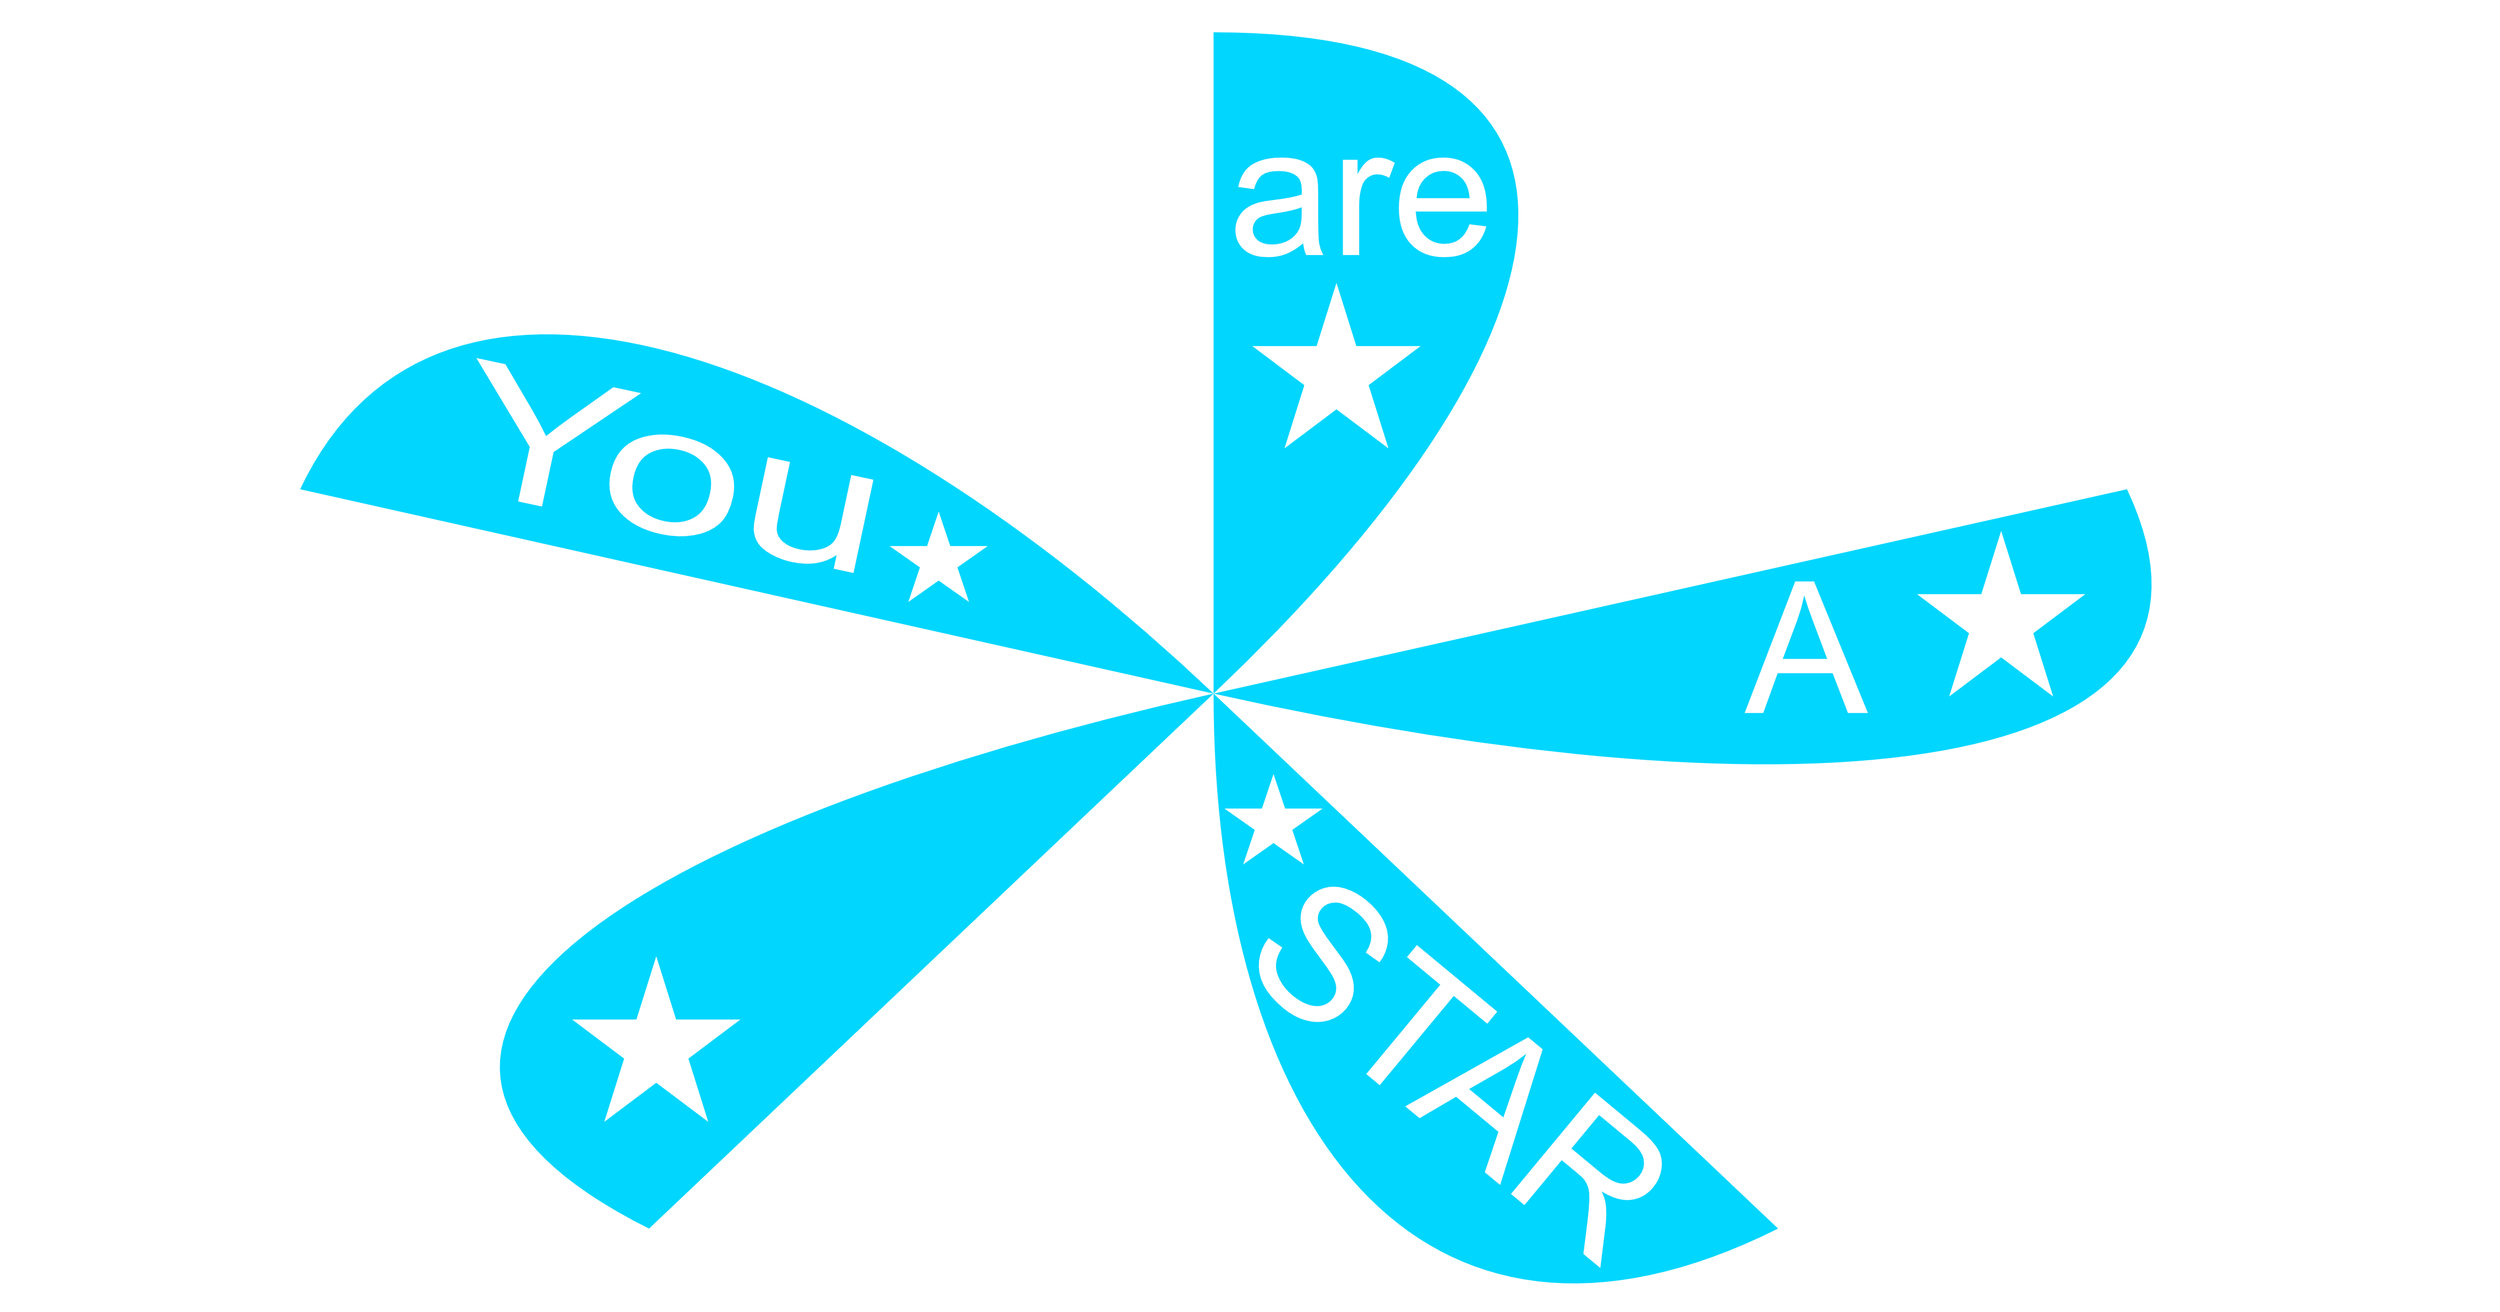 YOU ARE A STAR copy.jpg